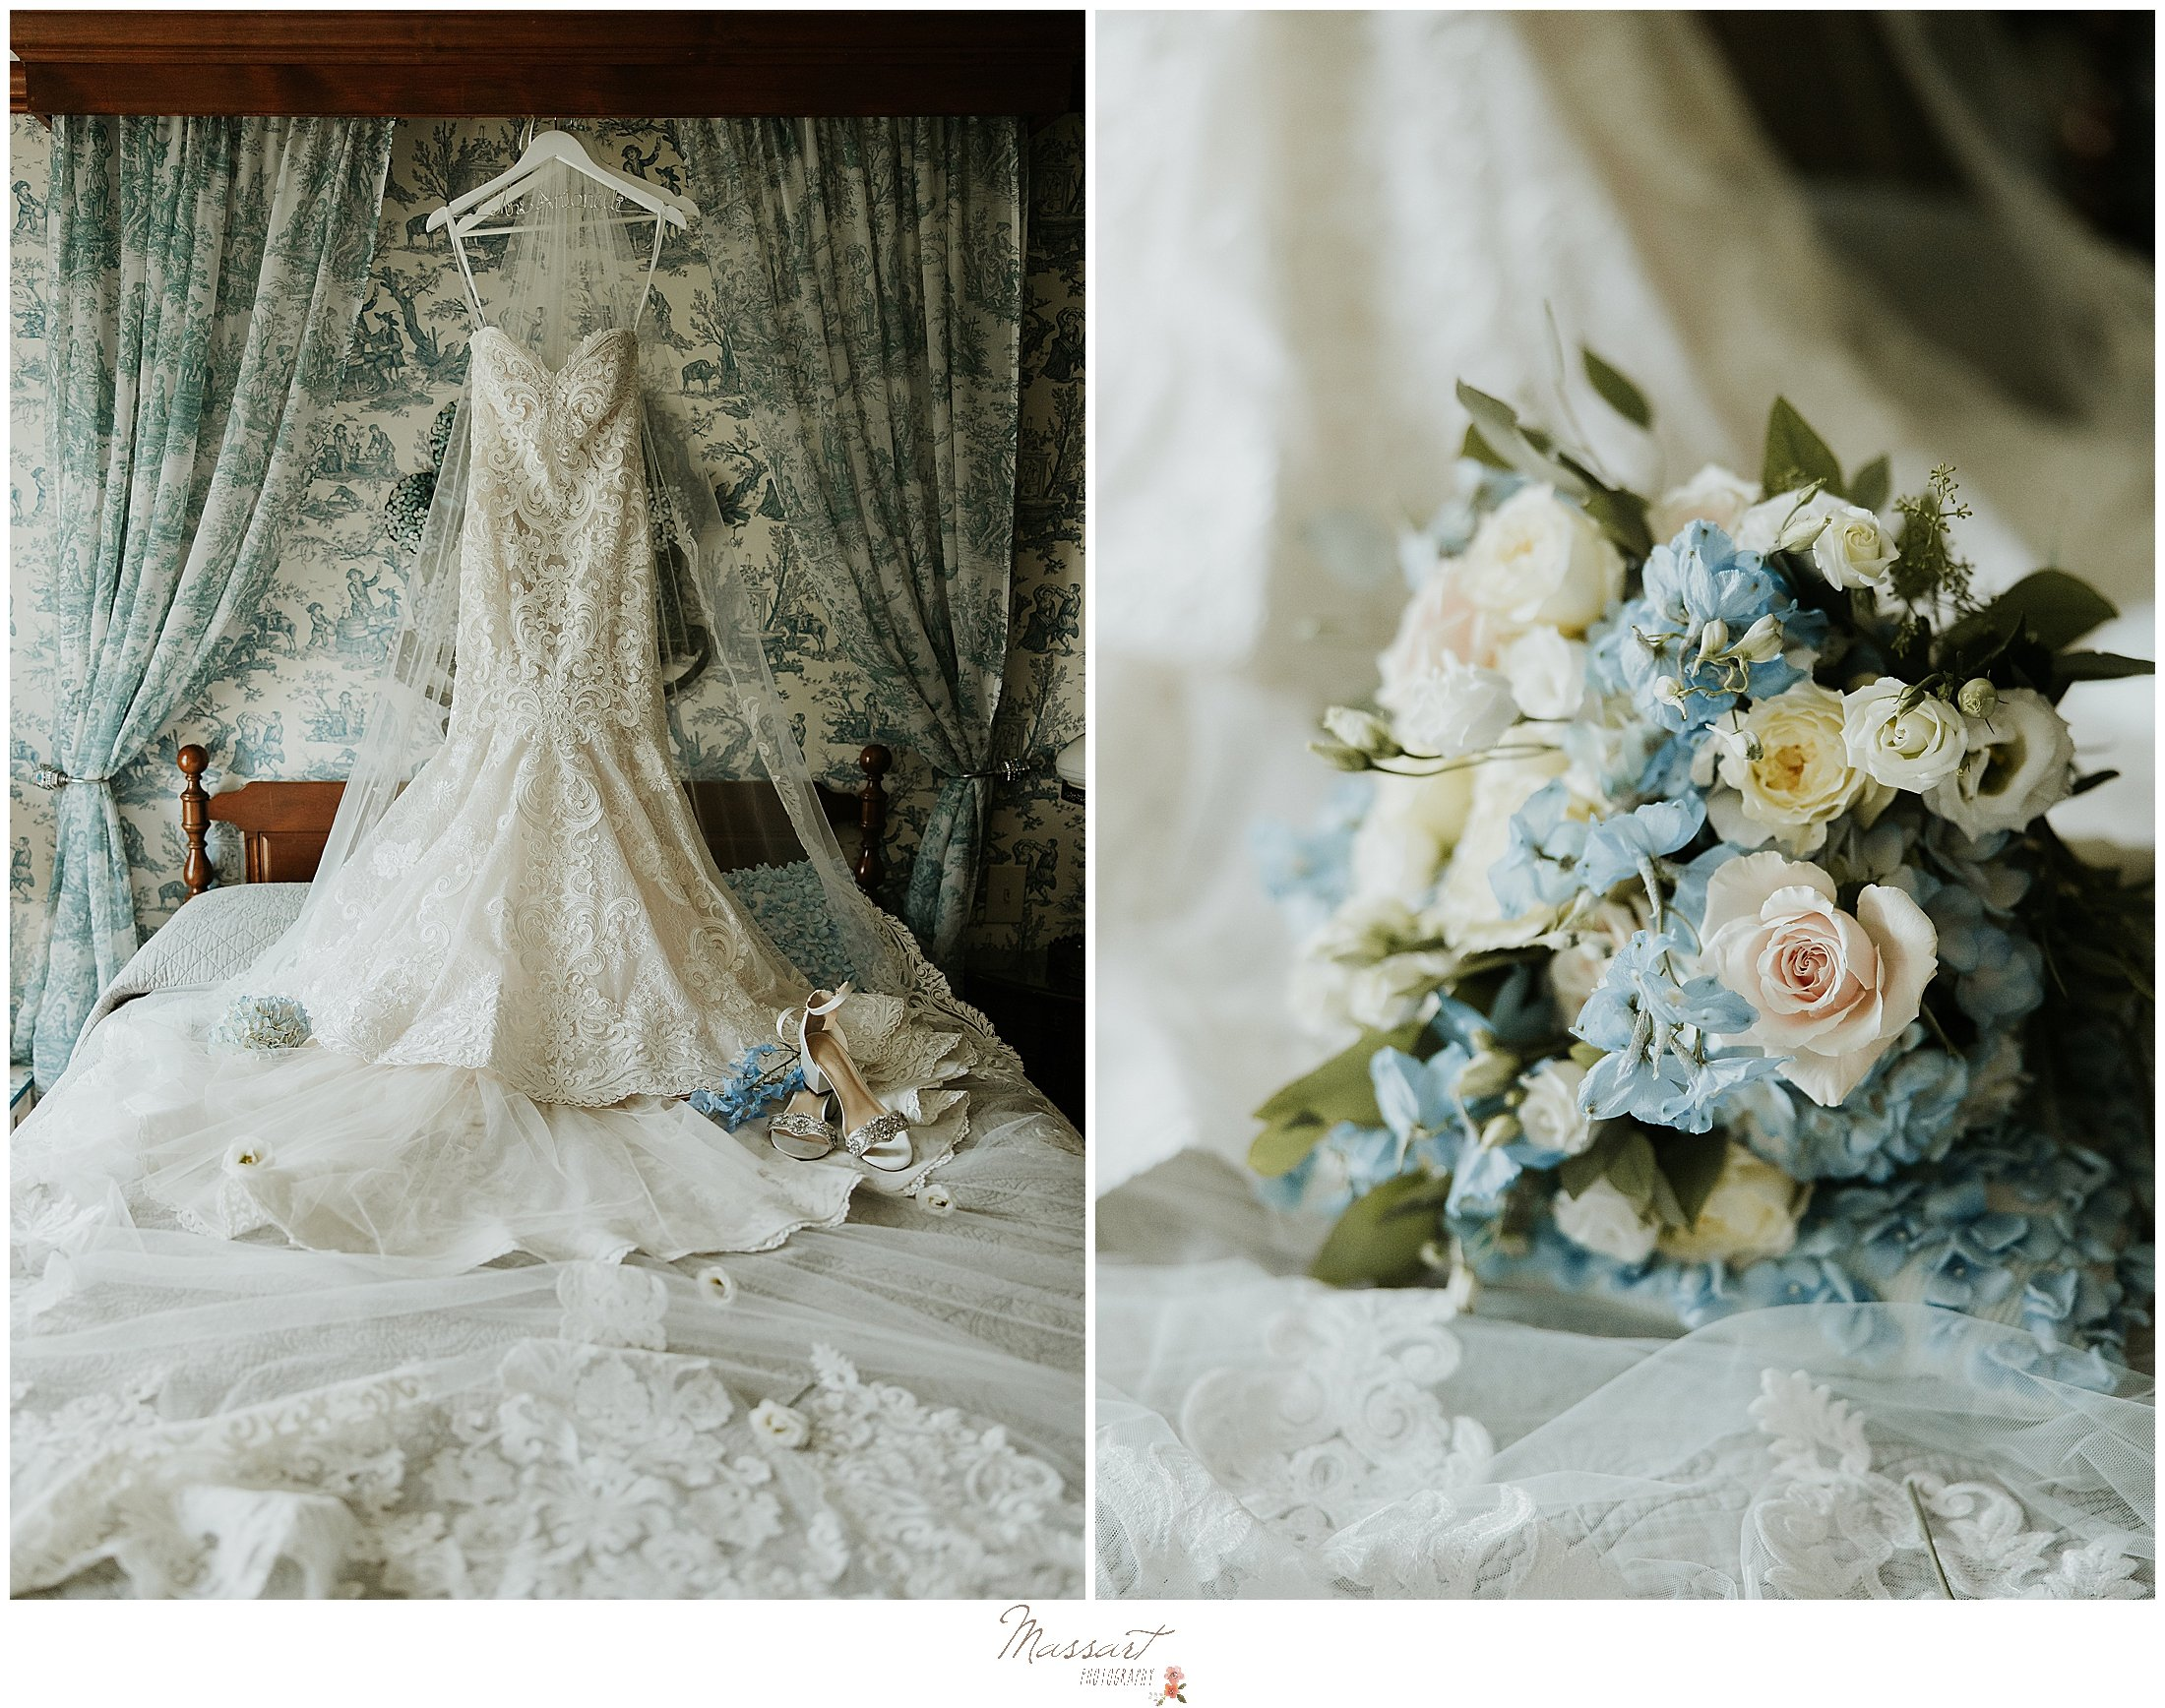 RI family and newborn photographers capture the wedding gown